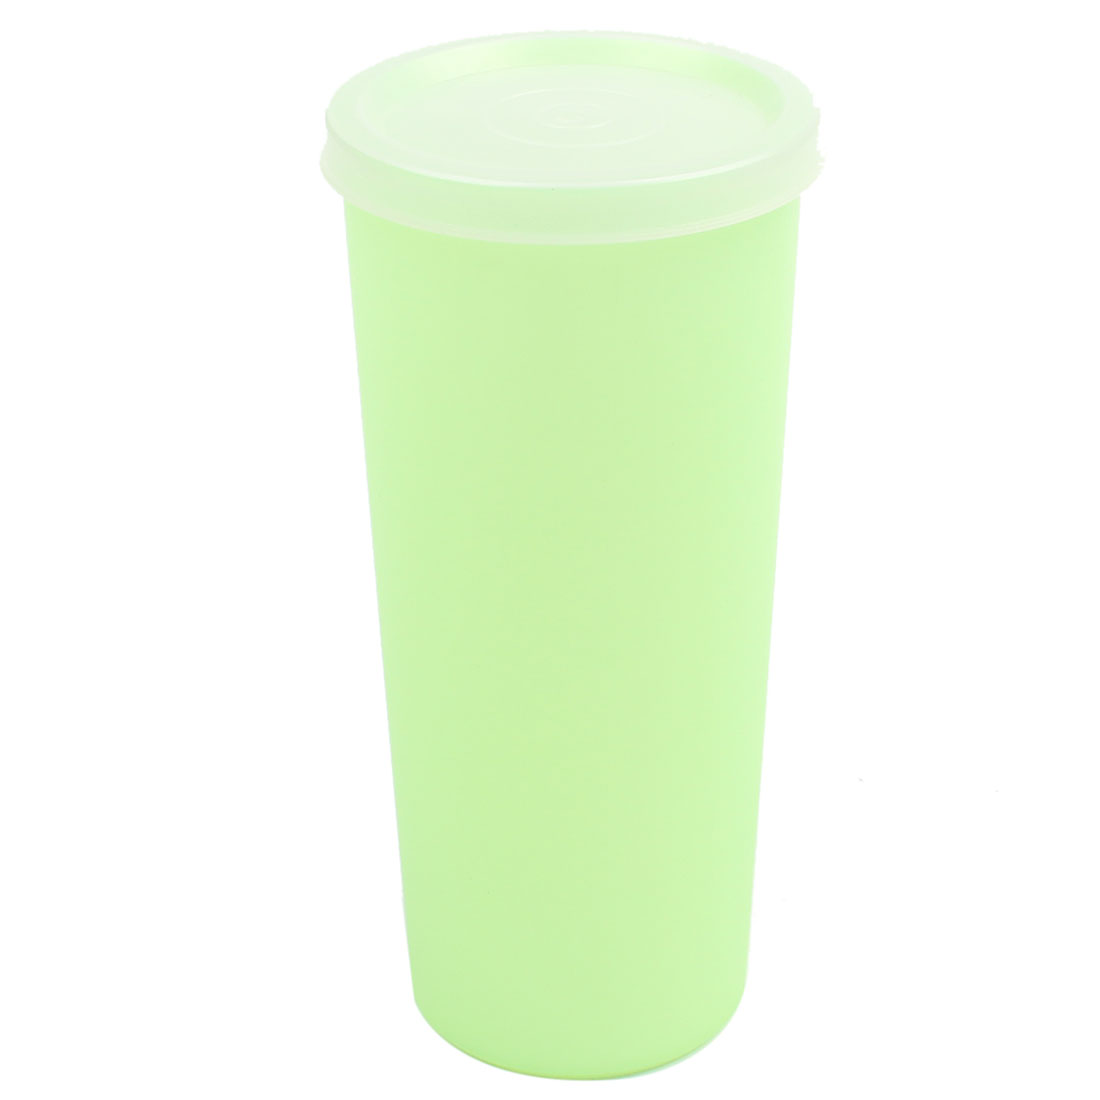 Home Office 380ml Capacity Pale Green Plastic Cylinder Water Cup